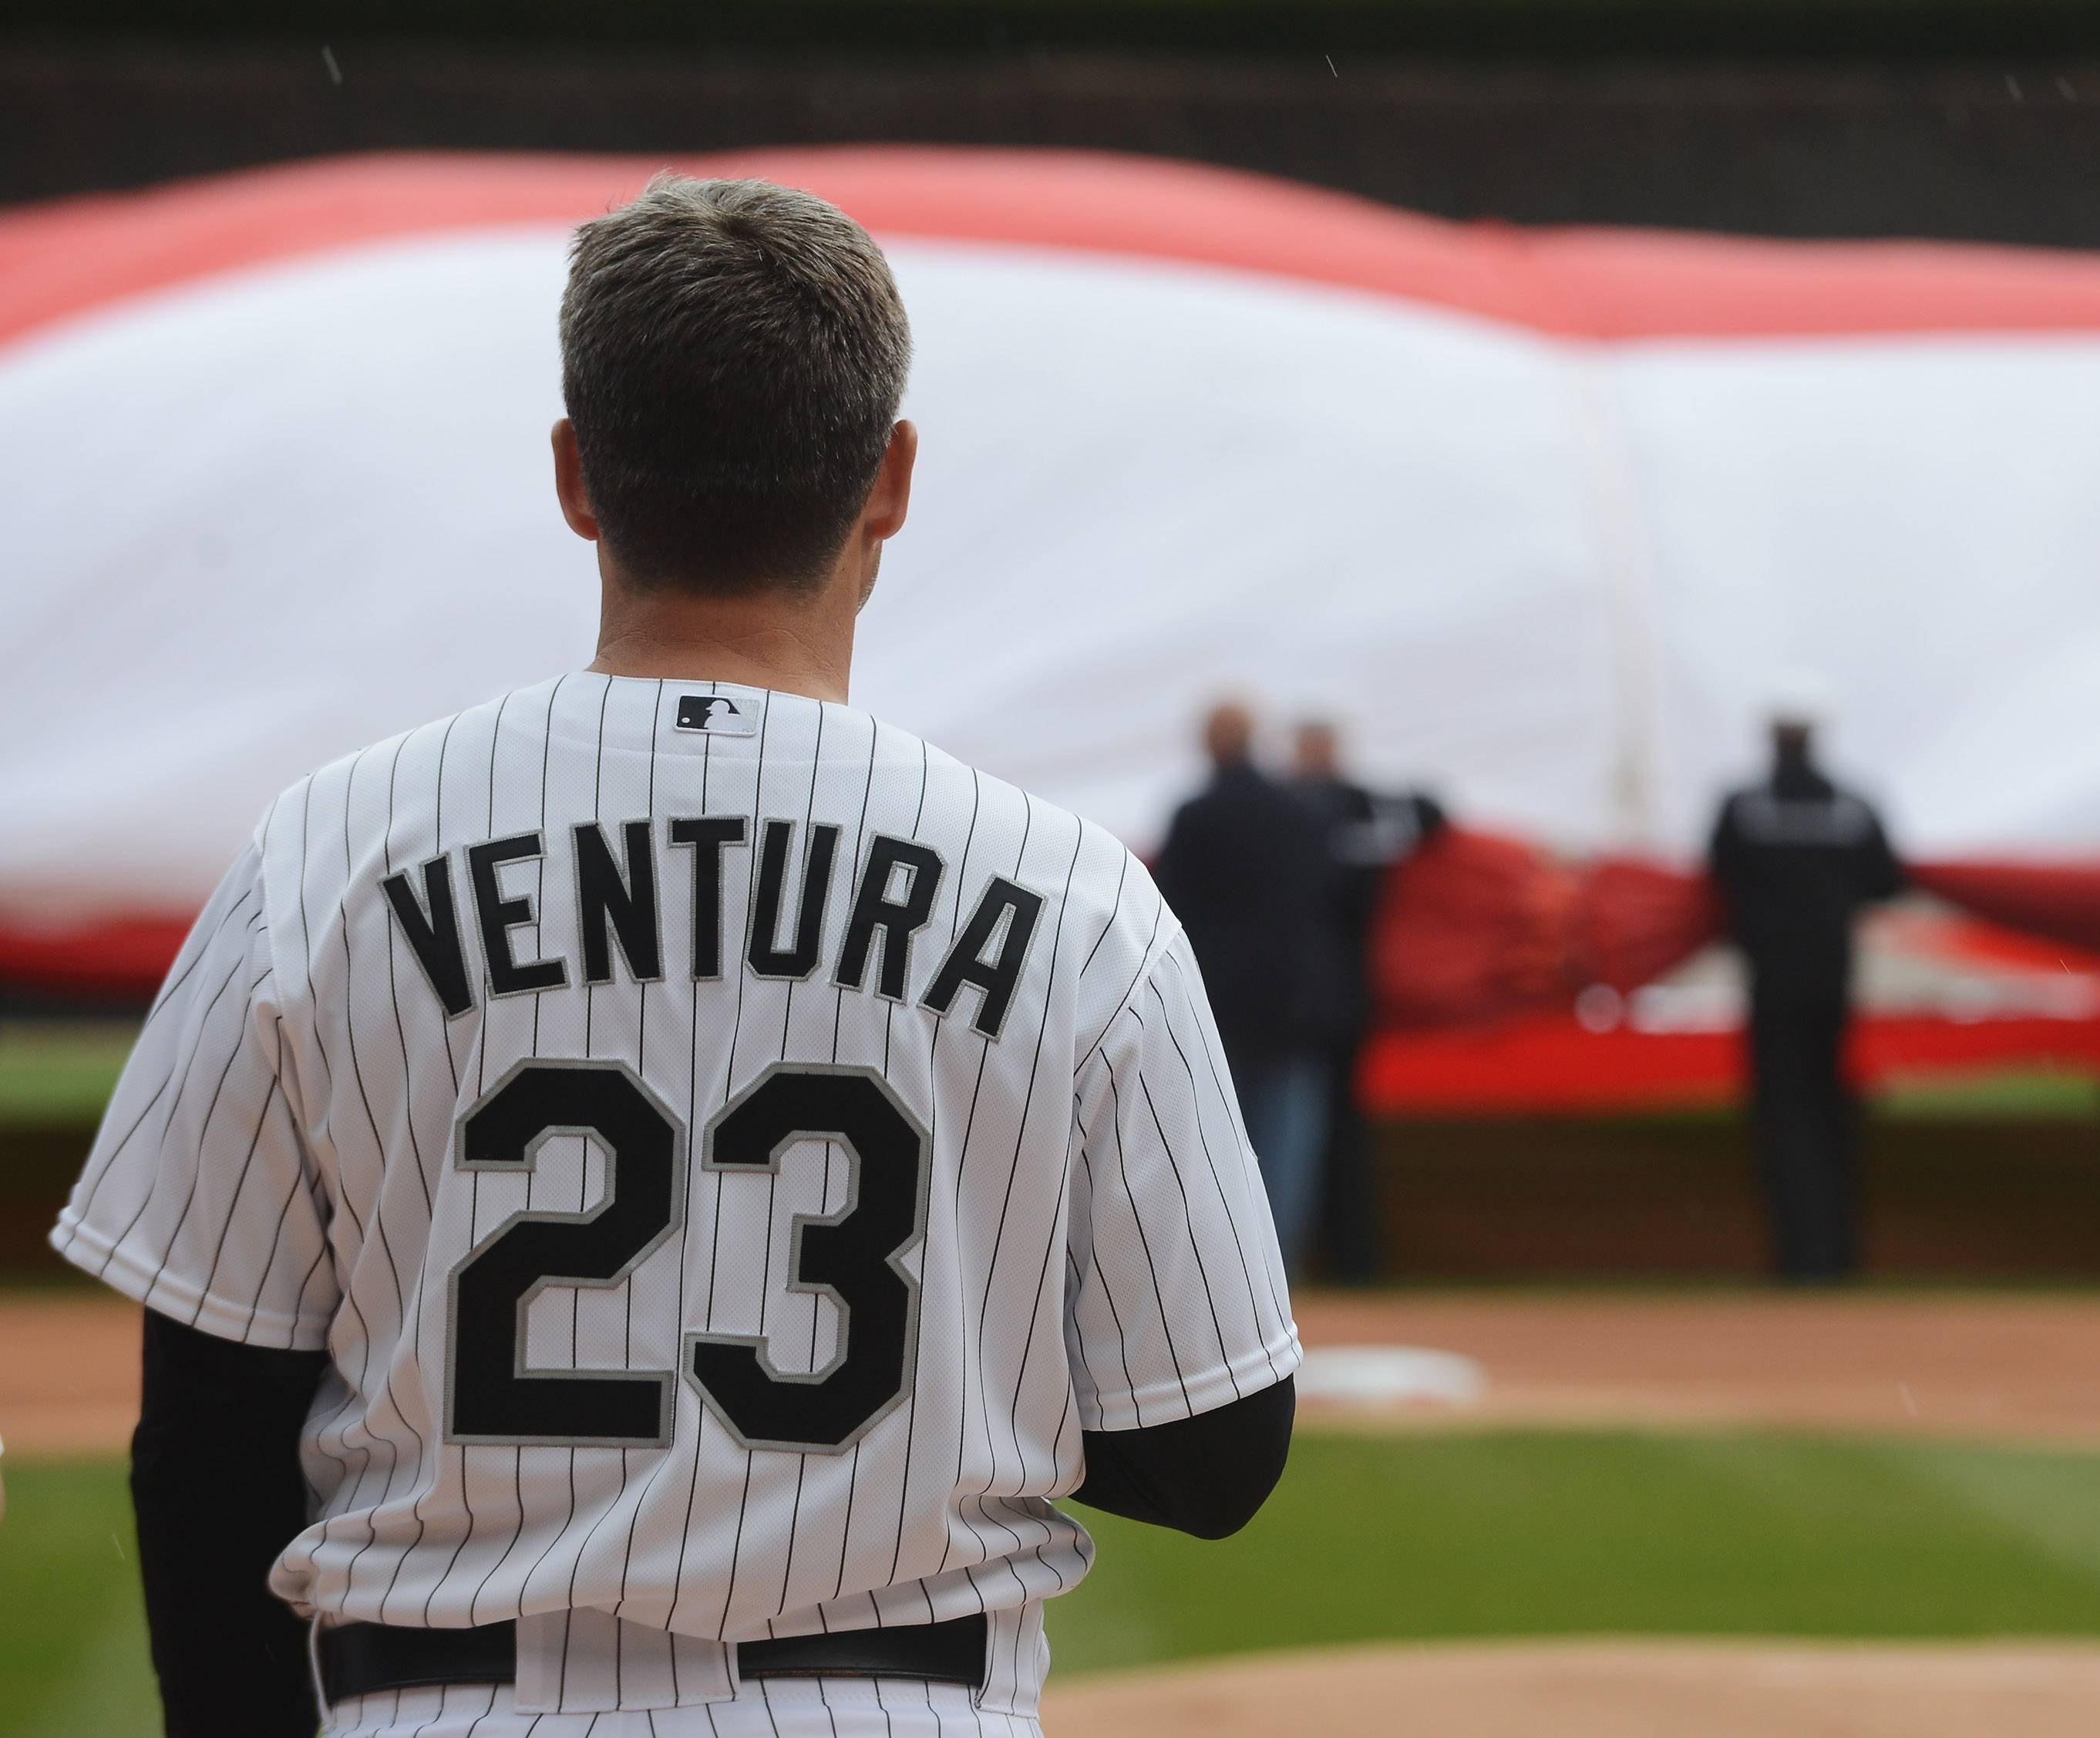 Manager Robin Ventura faces the flag on the field during the national anthem at the Chicago White Sox home opener at U.S. Cellular Field in Chicago Friday.